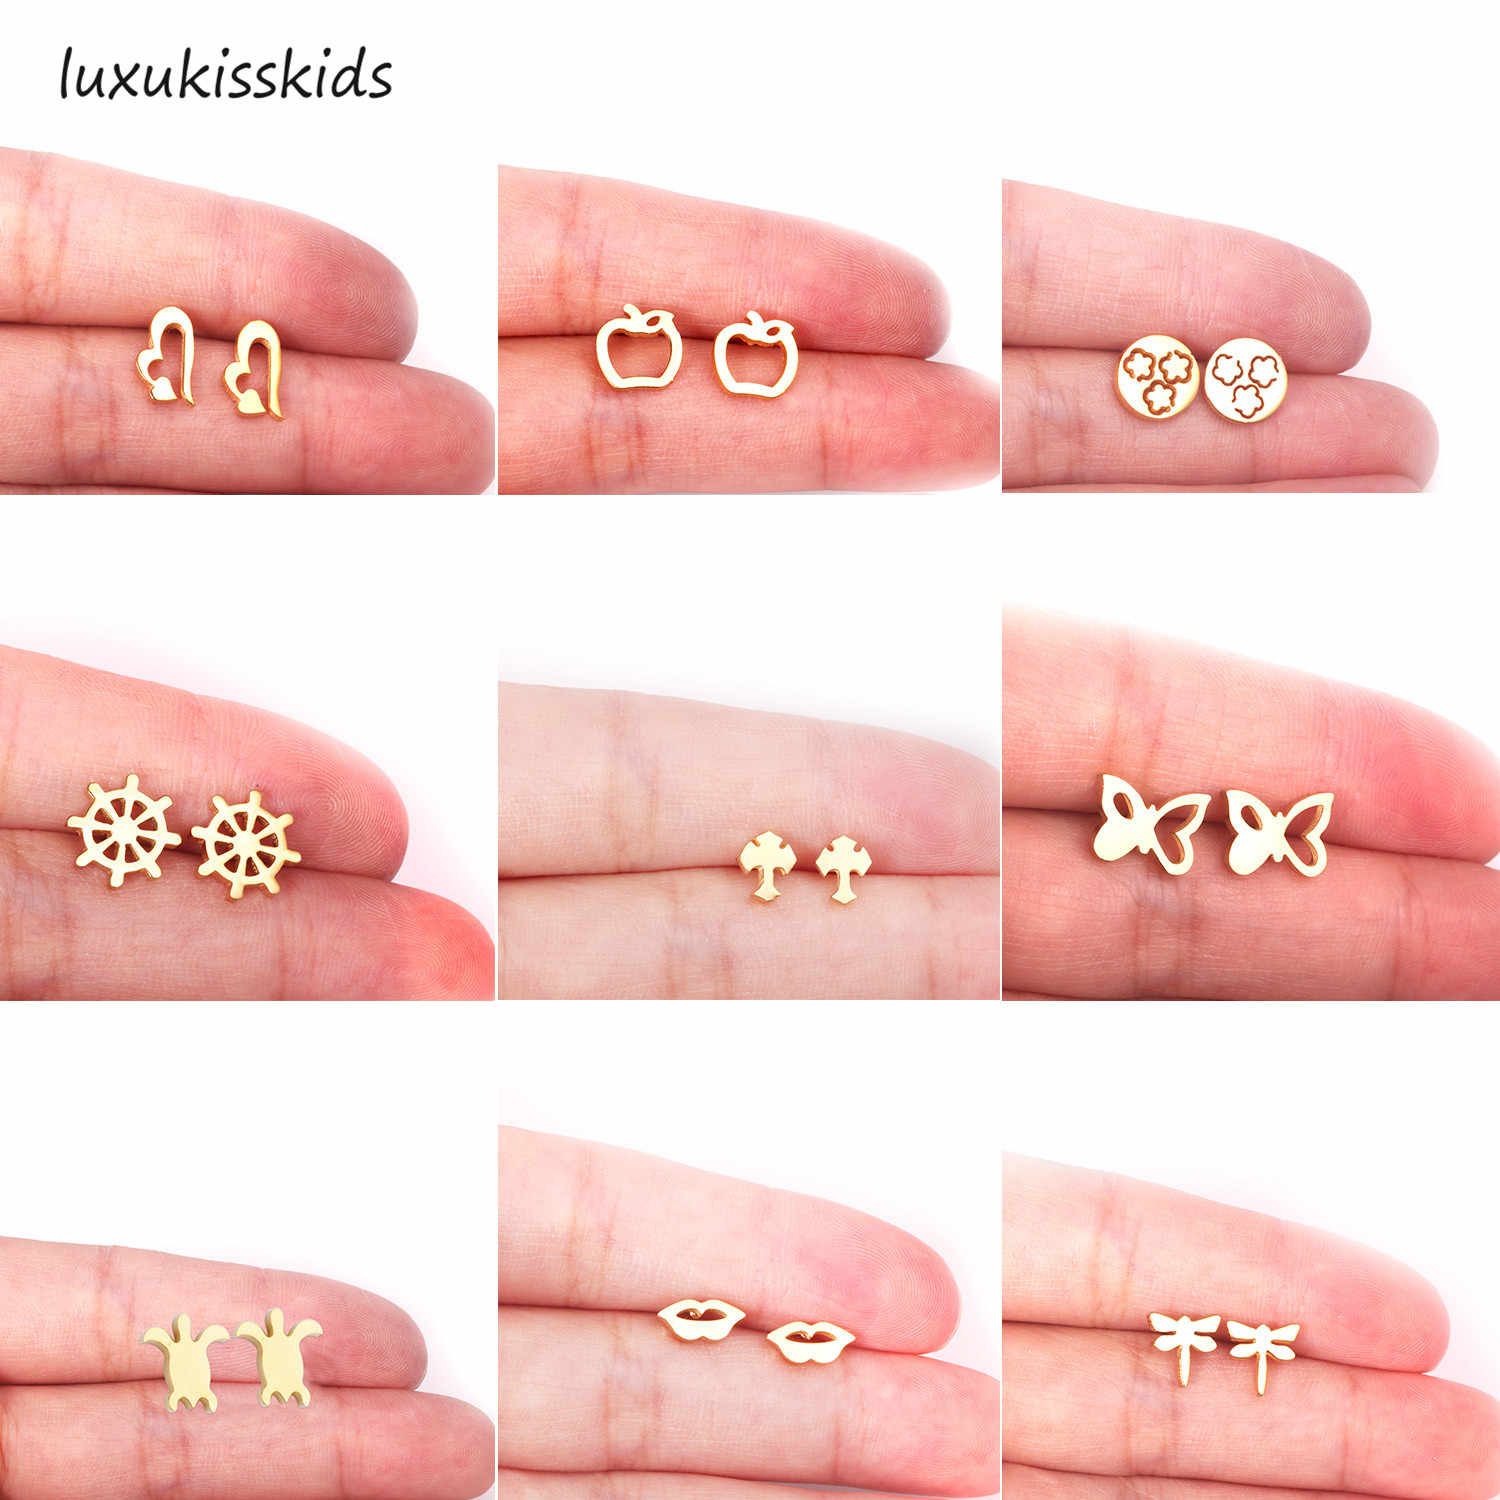 LUXUKISSKIDS Top 316L Stainless Steel Small Stud Earrings Set Jewelry Gold Silver Stud Earring For Women/Girl/Men Gift